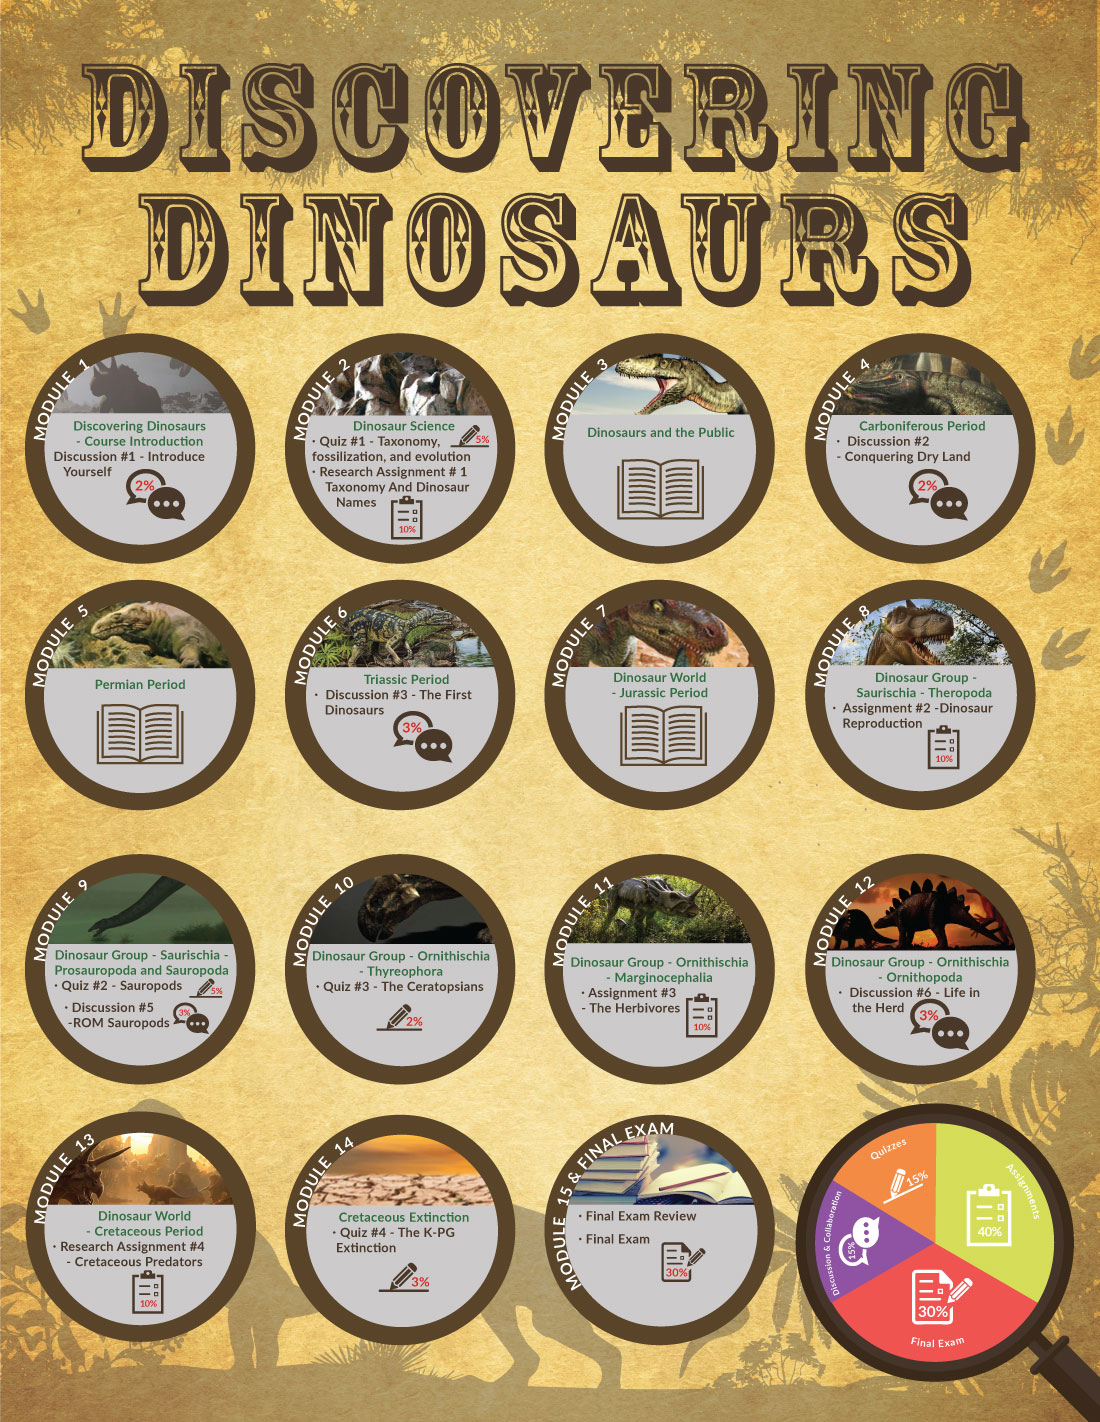 Discovering Dinosaurs infographic